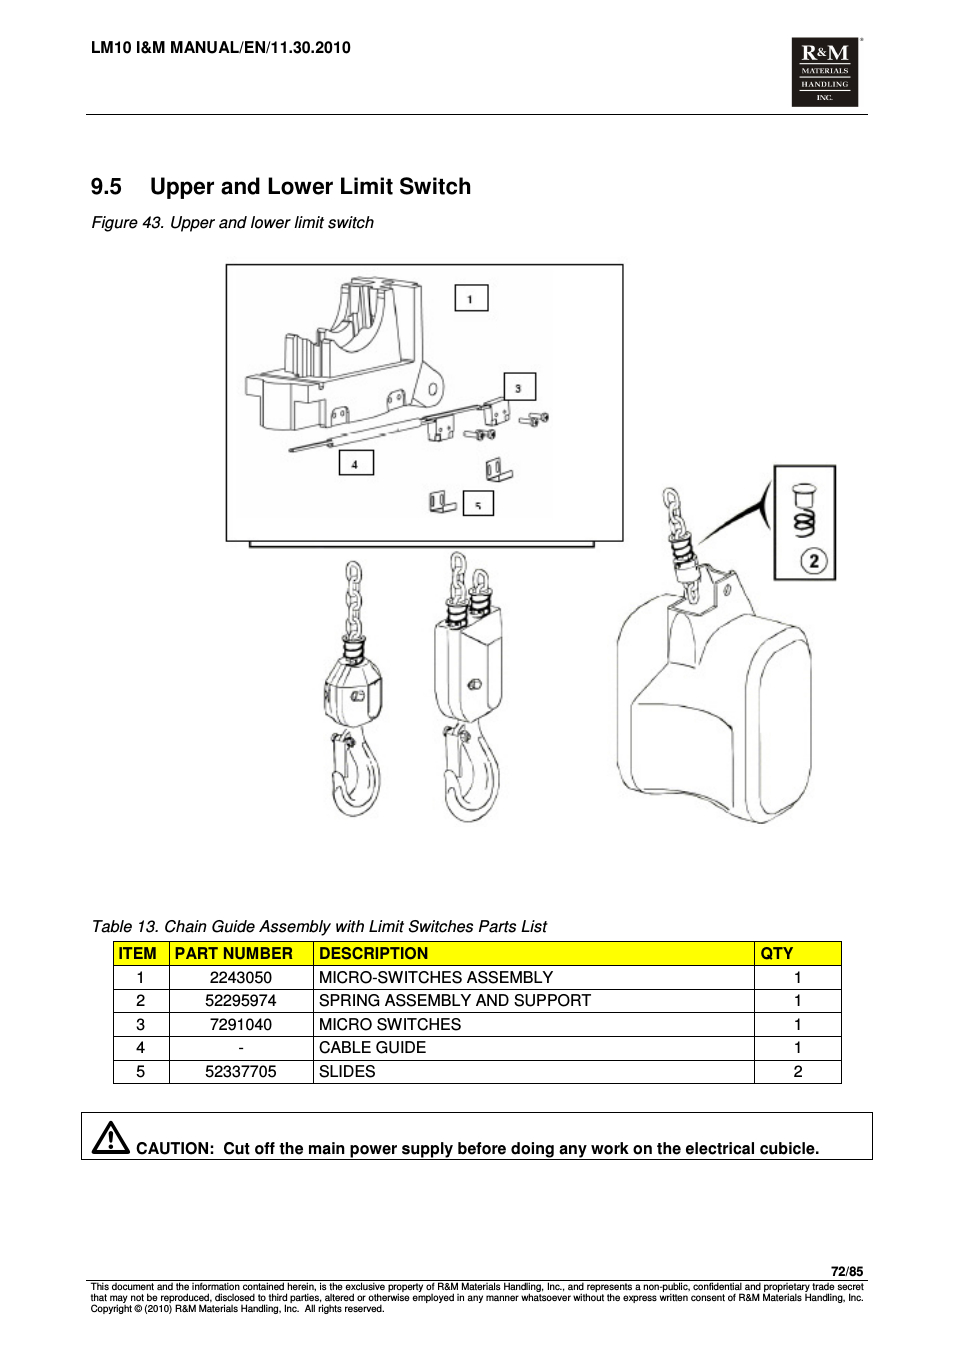 cm shopstar hoist wiring diagram Download-Cm Hoist Wiring Diagram 5 Wire Wiring Diagram 16-a